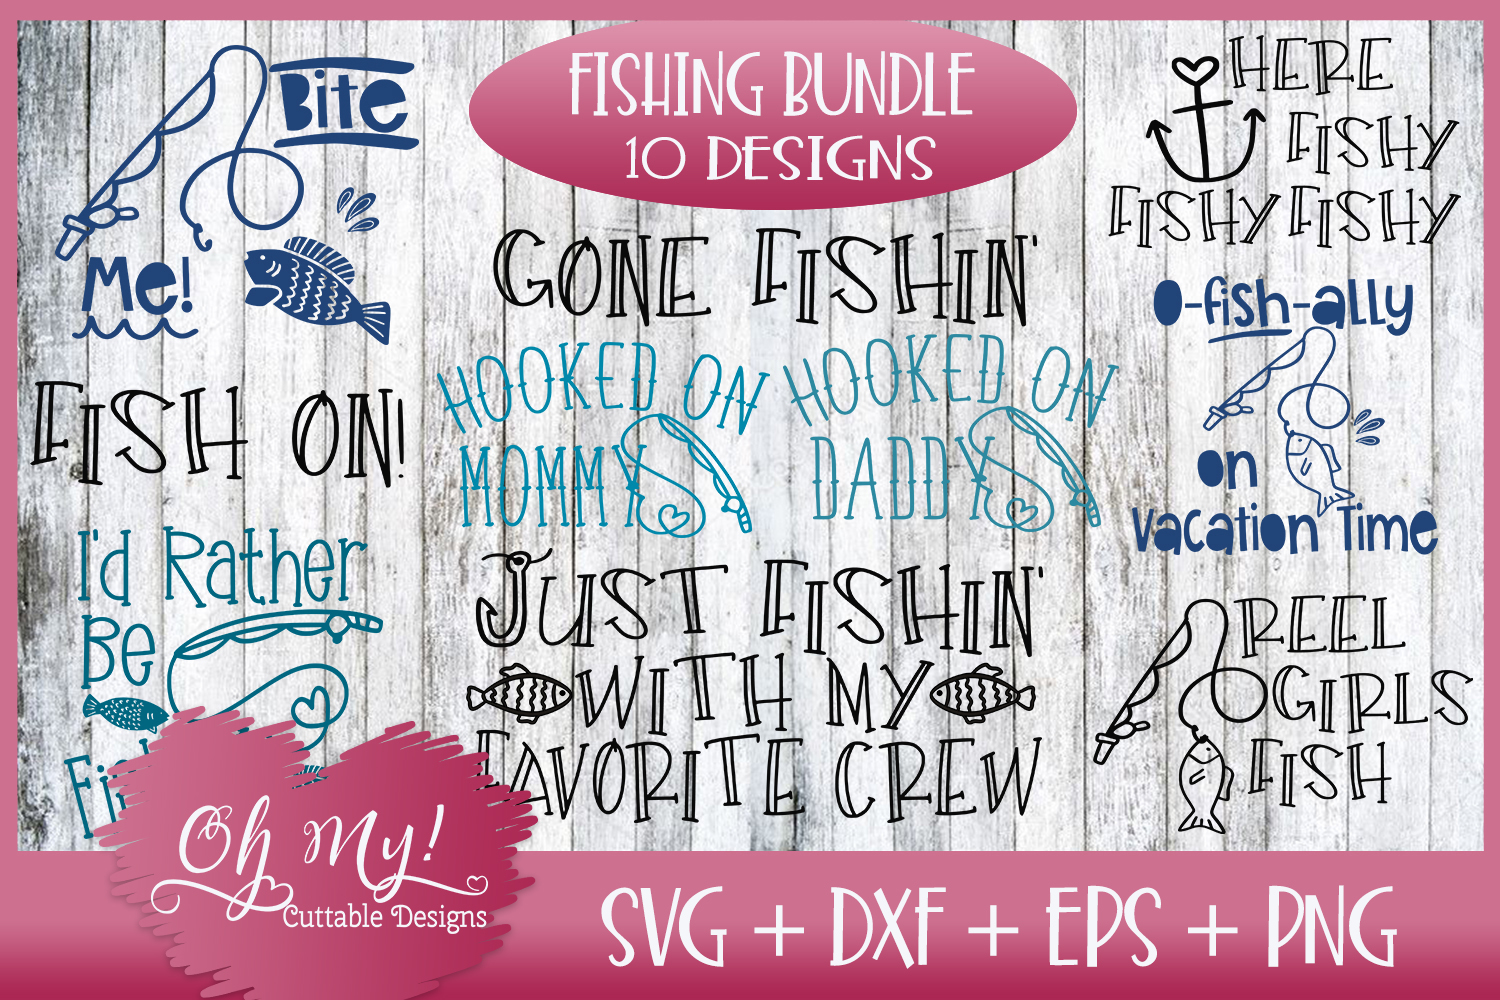 OH MY! HUGE FISHING BUNDLE DESIGNS SVG DXF EPS PNG example image 2